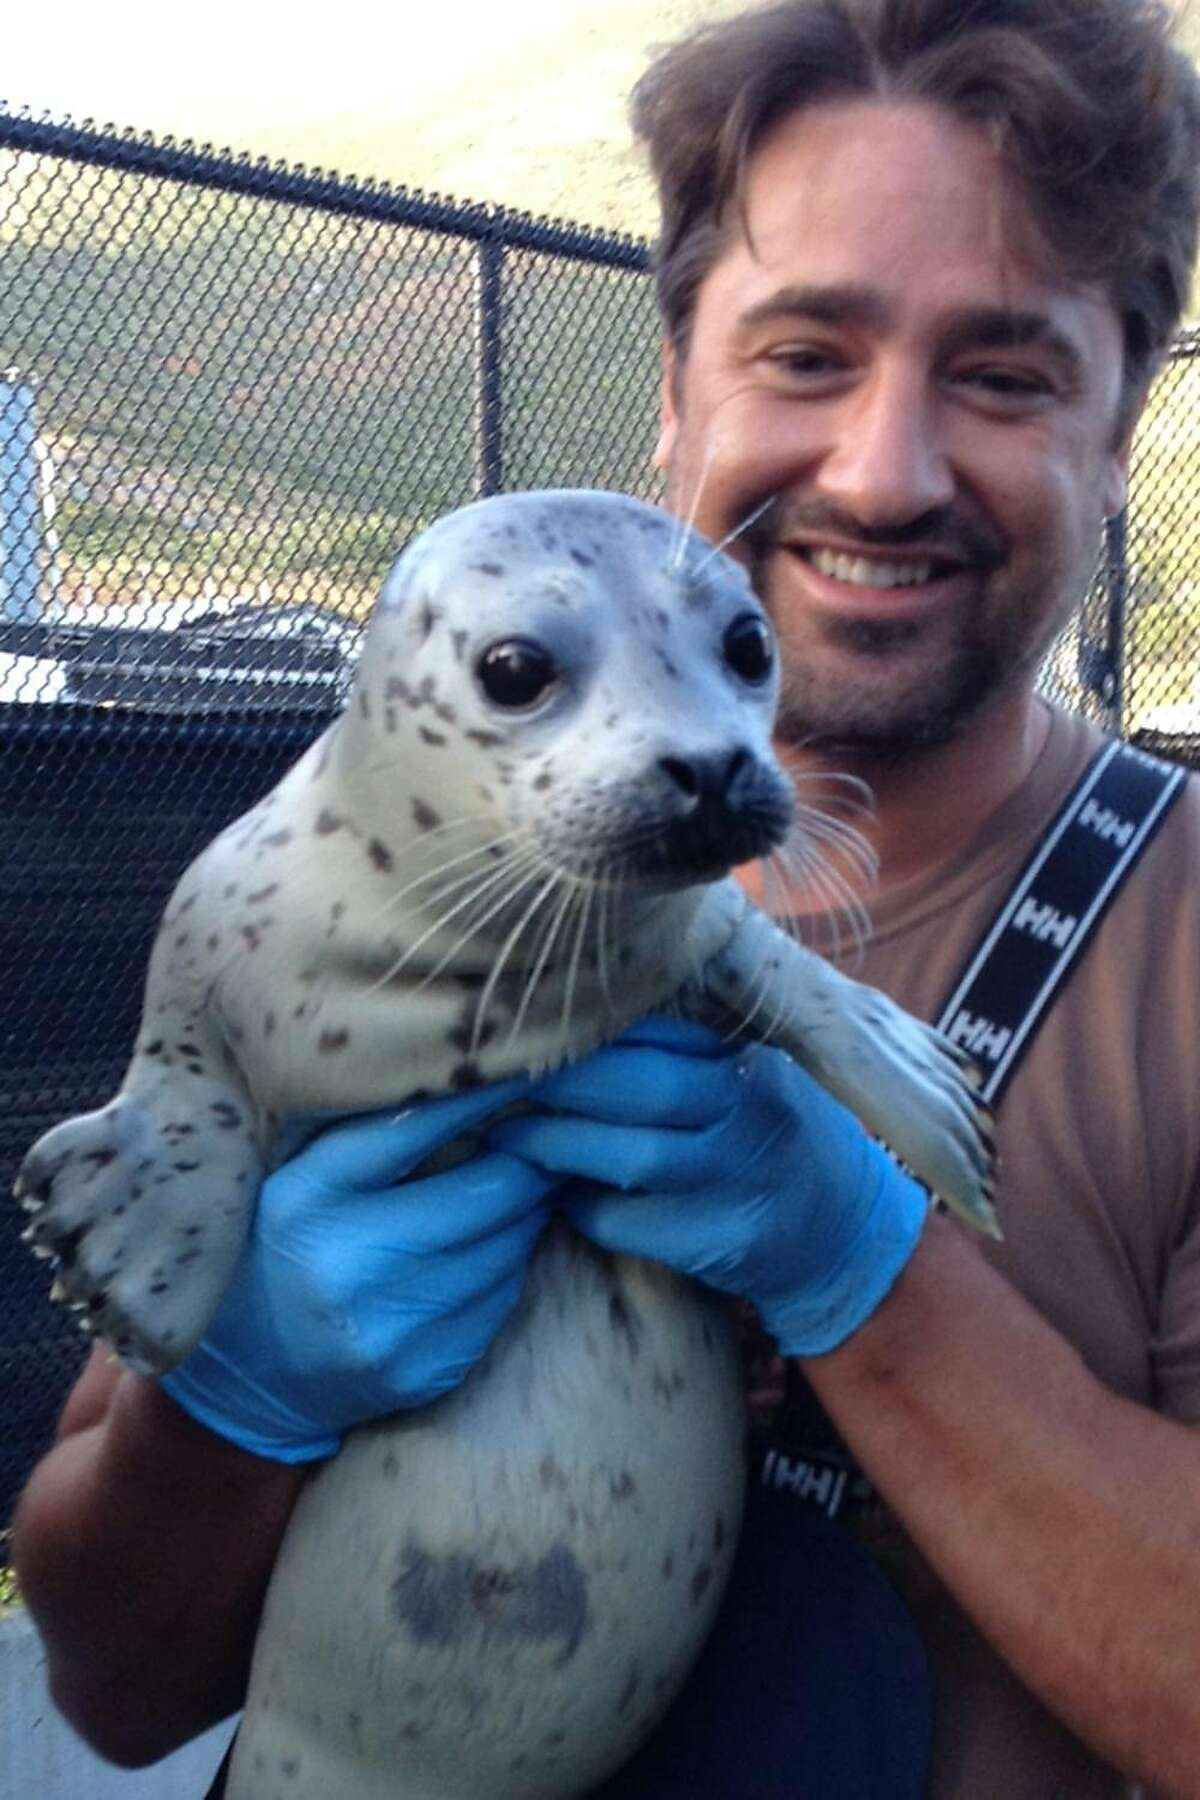 Capt. Glenn Williams helped rescued this baby harbor seal after finding it stranded and malnourished on some rocks in Bodega Bay in March 2019. The Marine Mammal Center volunteer captains the Osprey ferry - which operates from San Francisco to Berkeley - and on Dec. 20 he rescued an older man who had fallen off his sailboat.